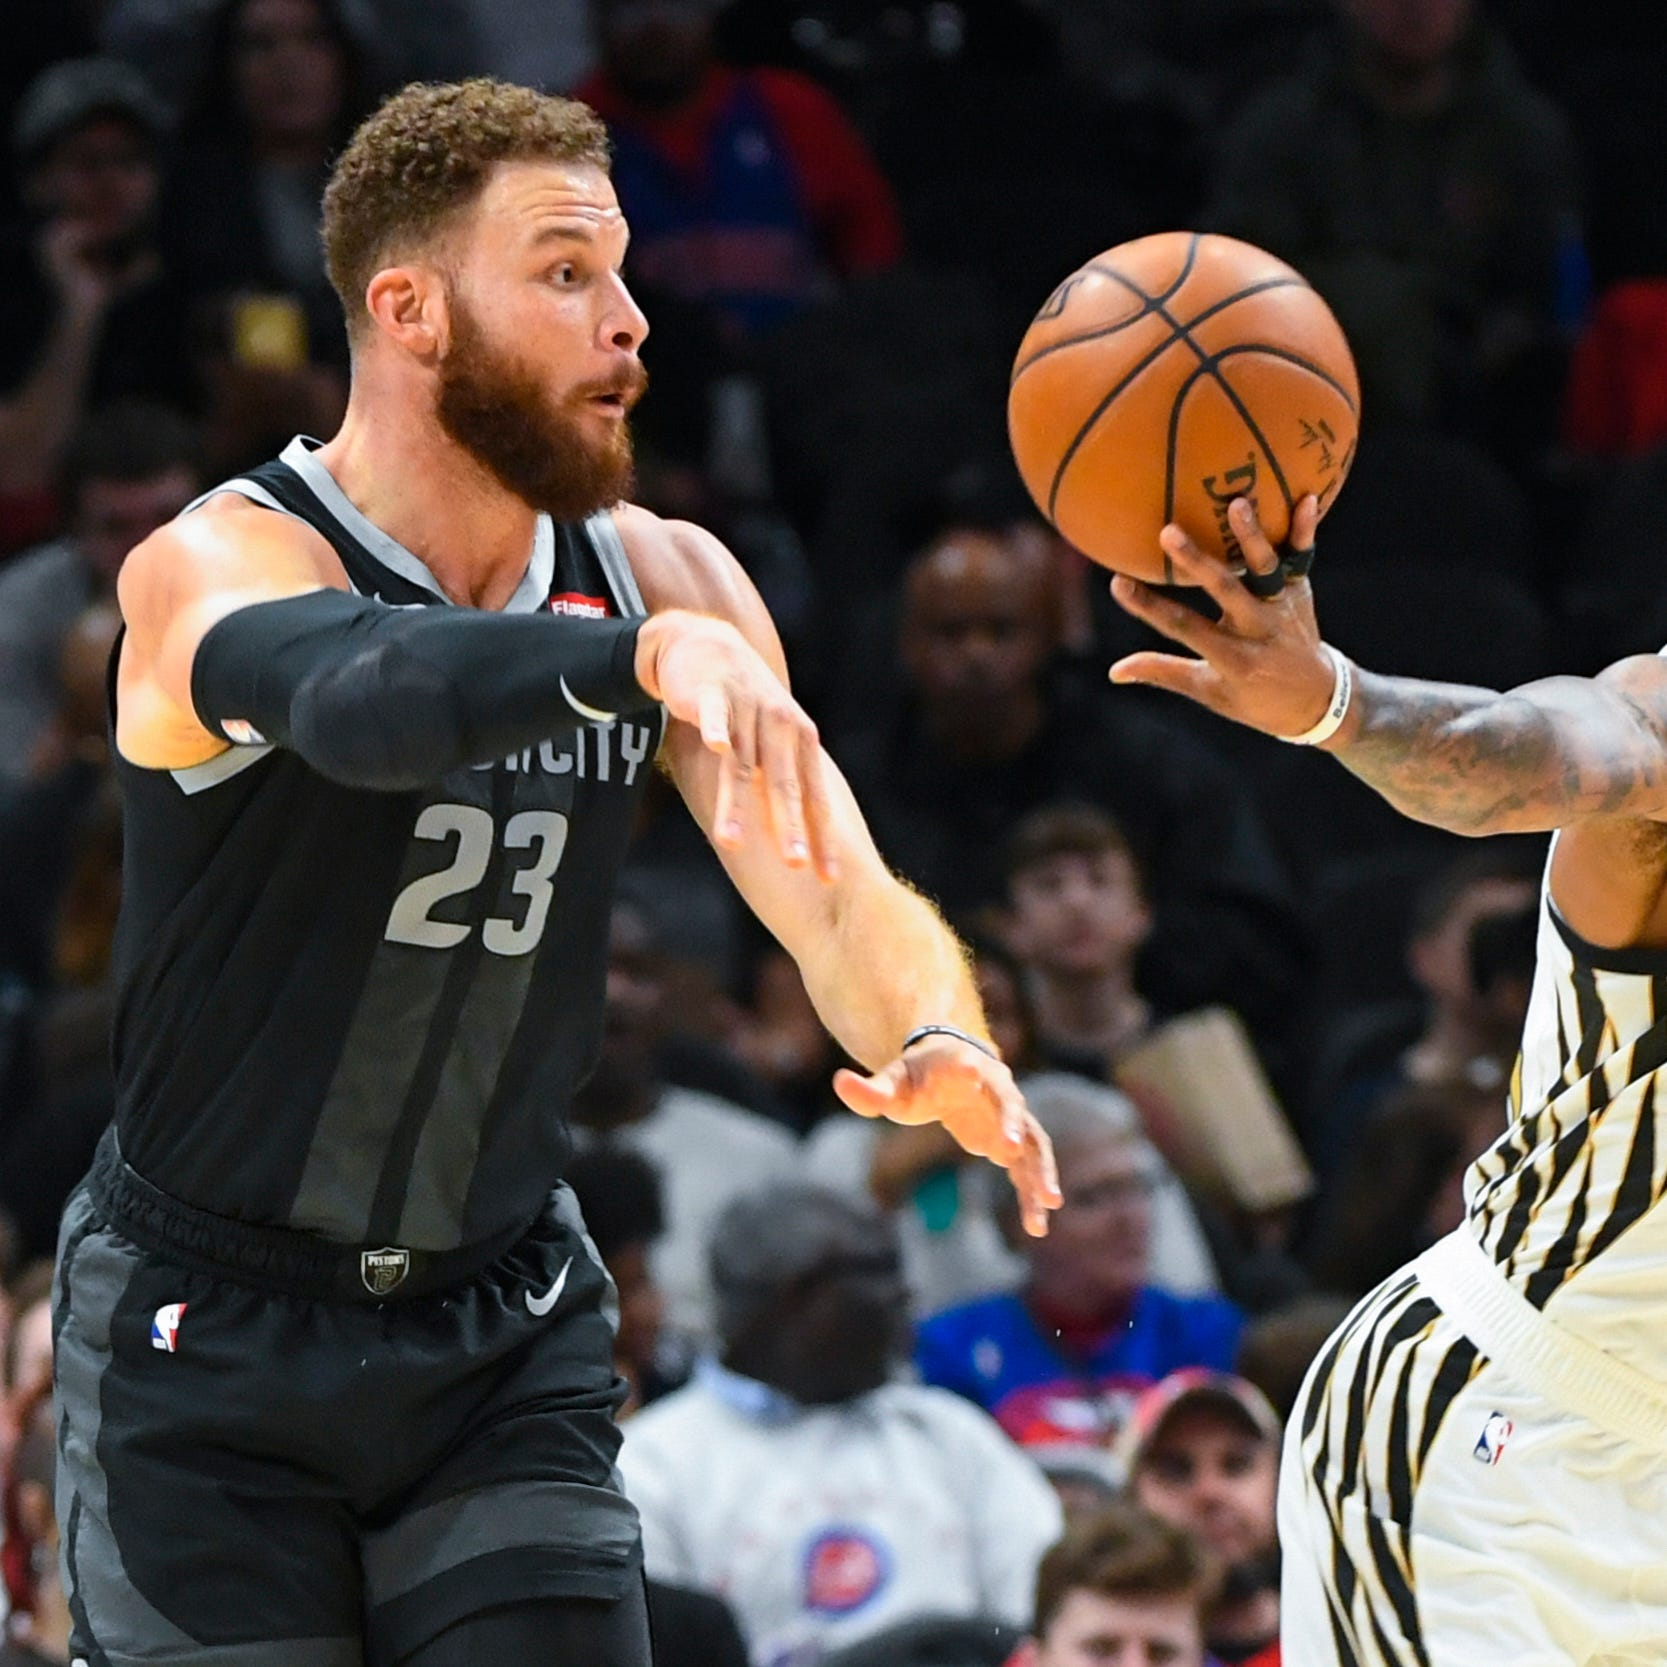 After Blake Griffin ejection and trash talk, Pistons get the last word